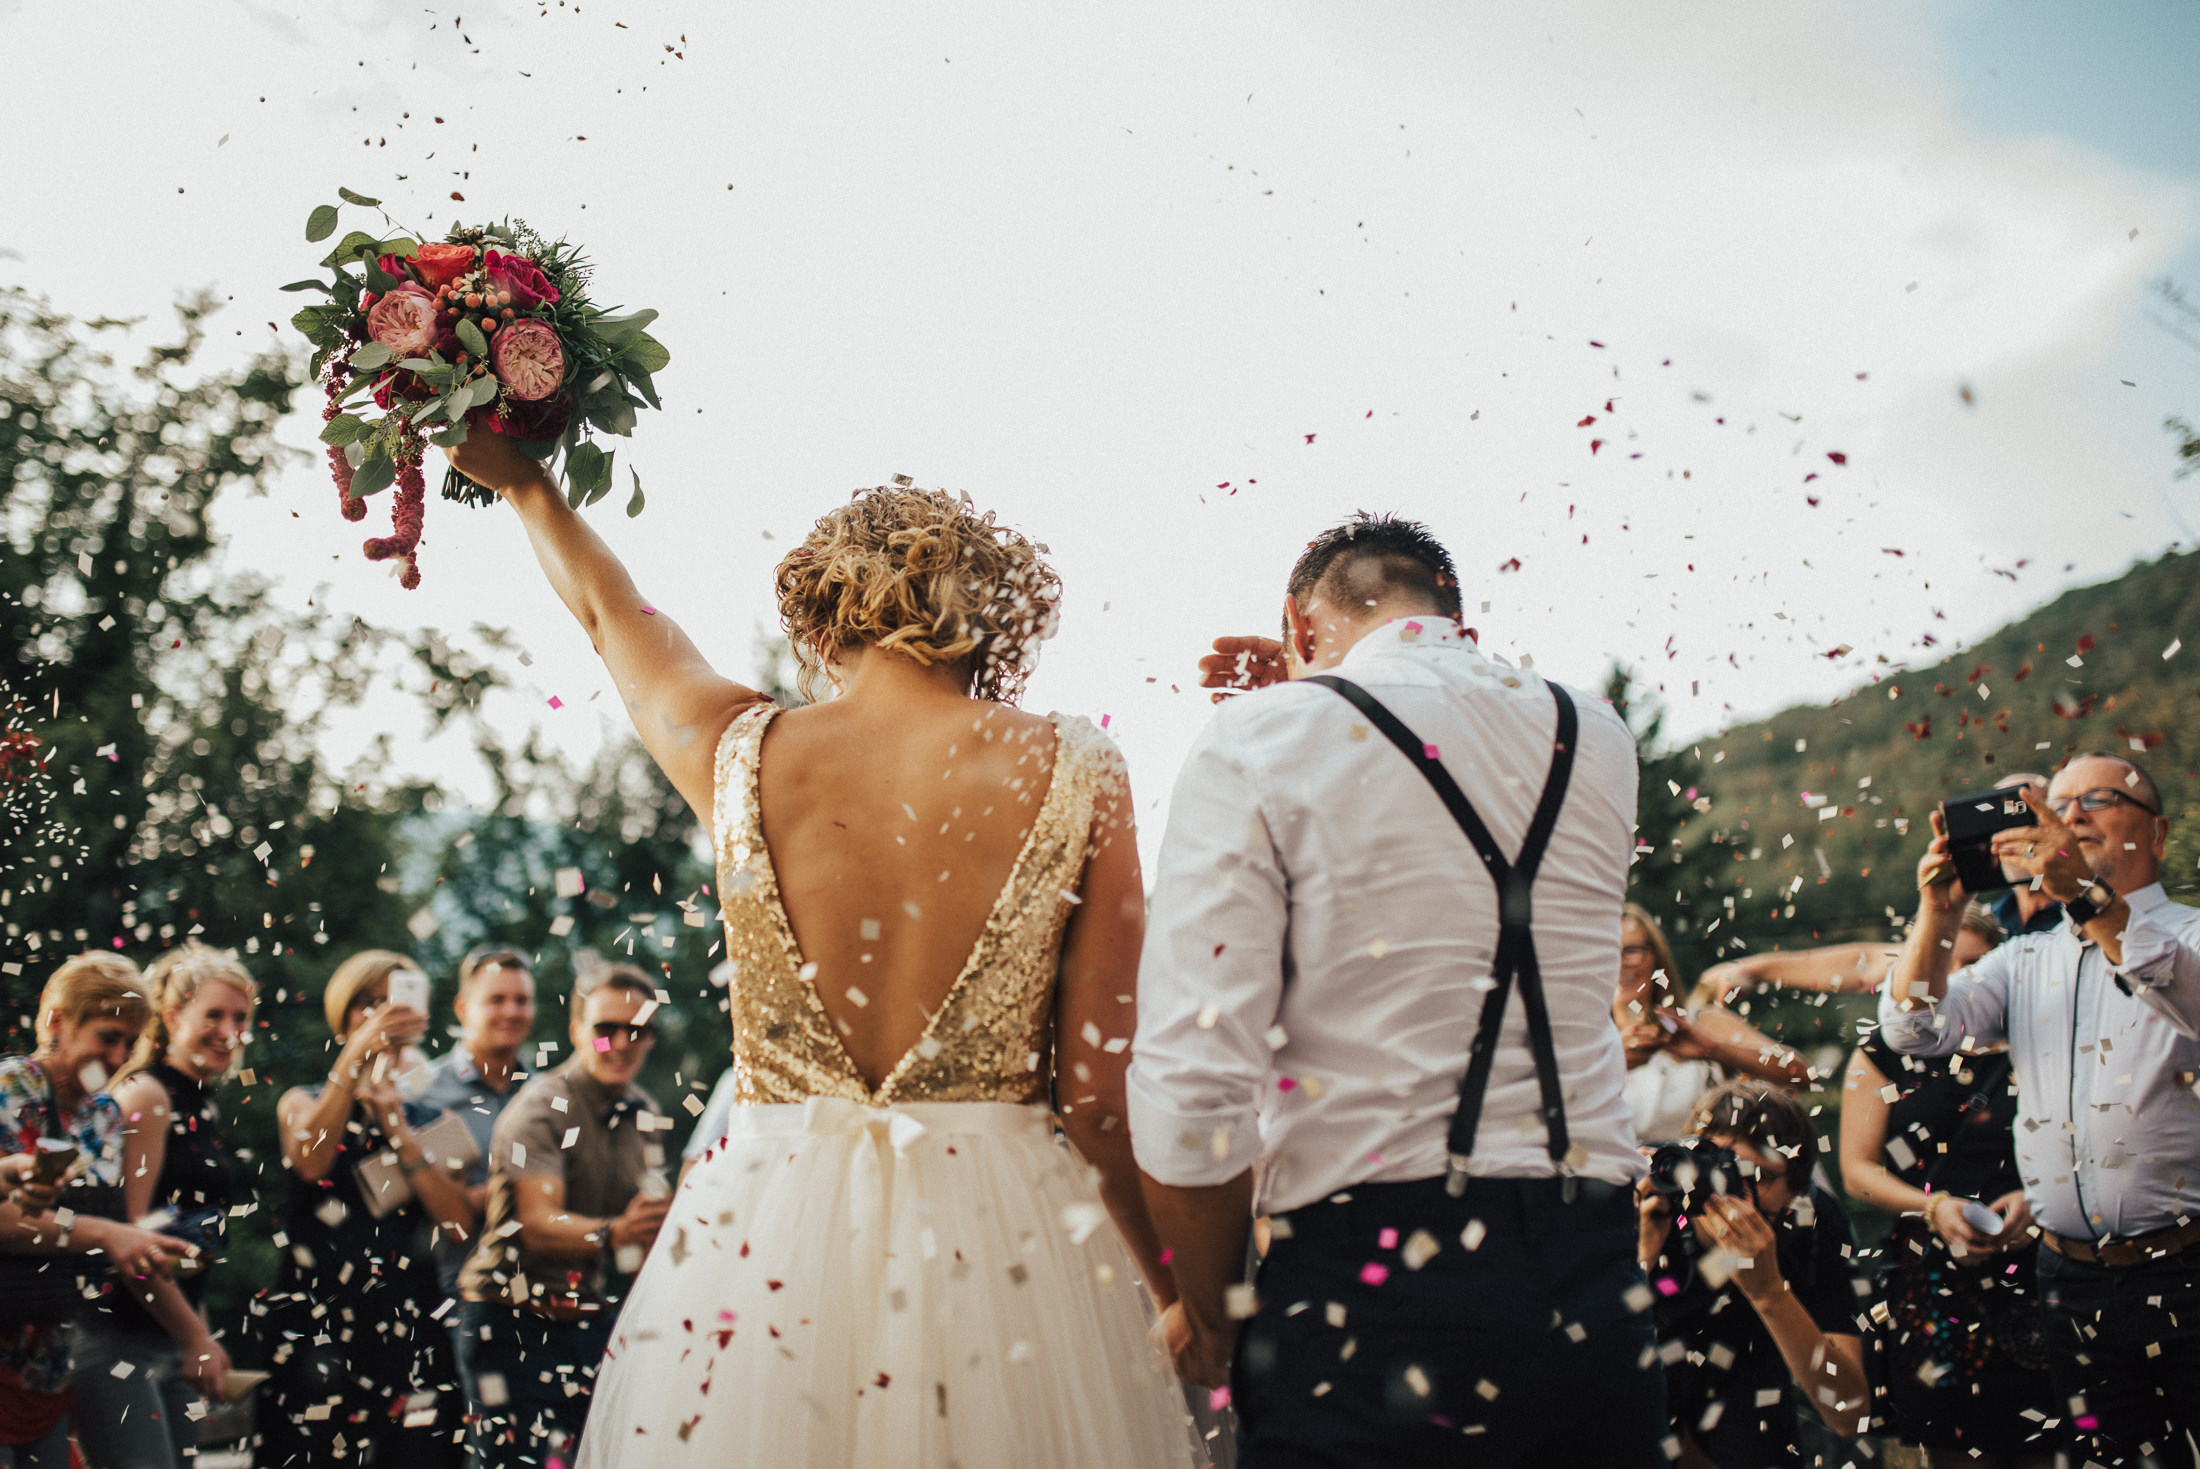 Up and coming 2018 wedding trends the urban twist for How to take wedding photos